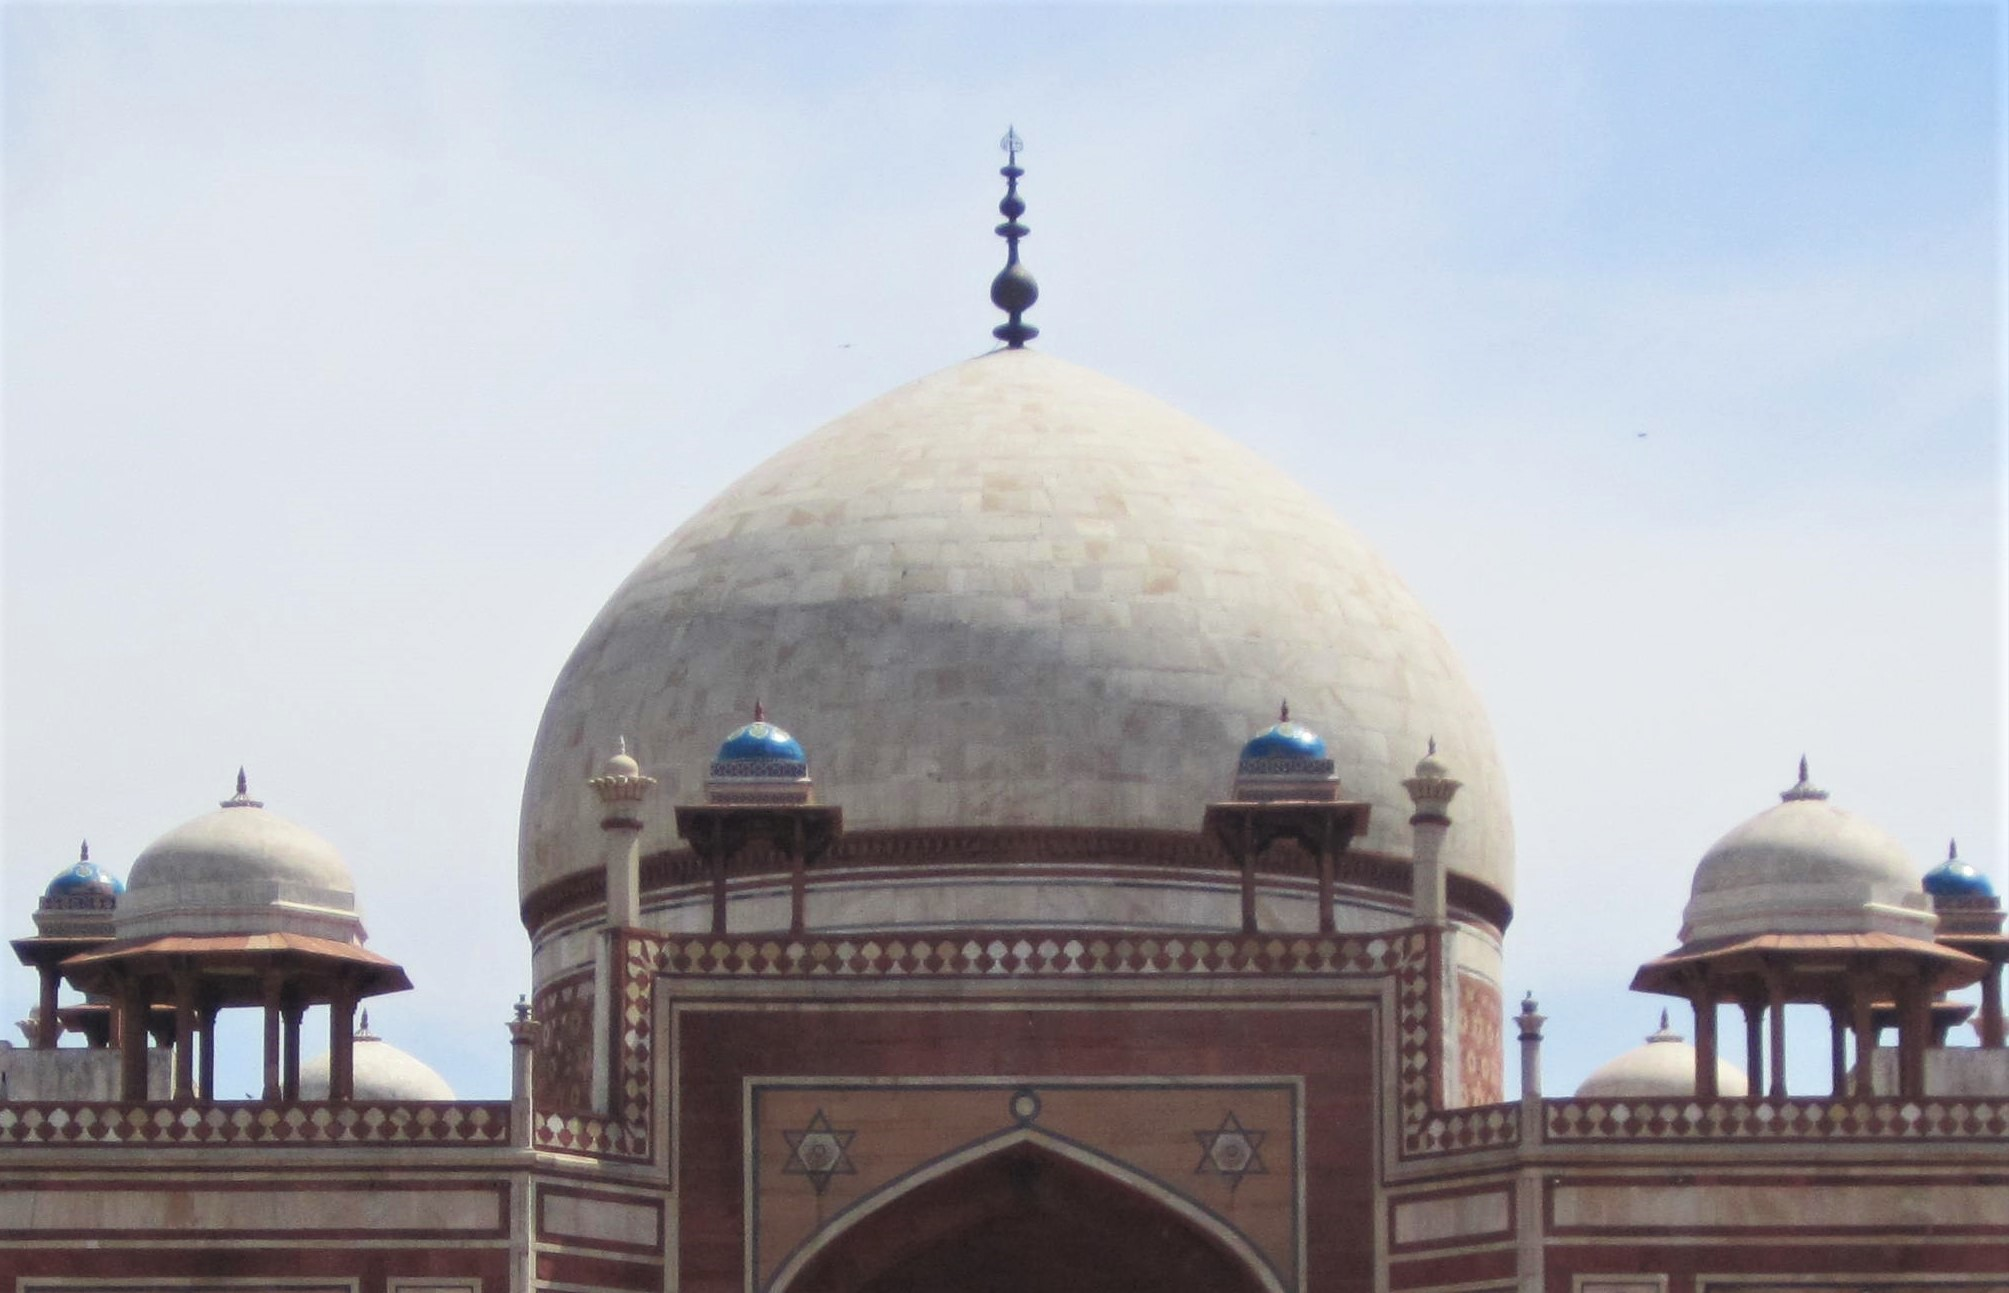 The 125ft tall marble-covered central dome with a copper brass finial.